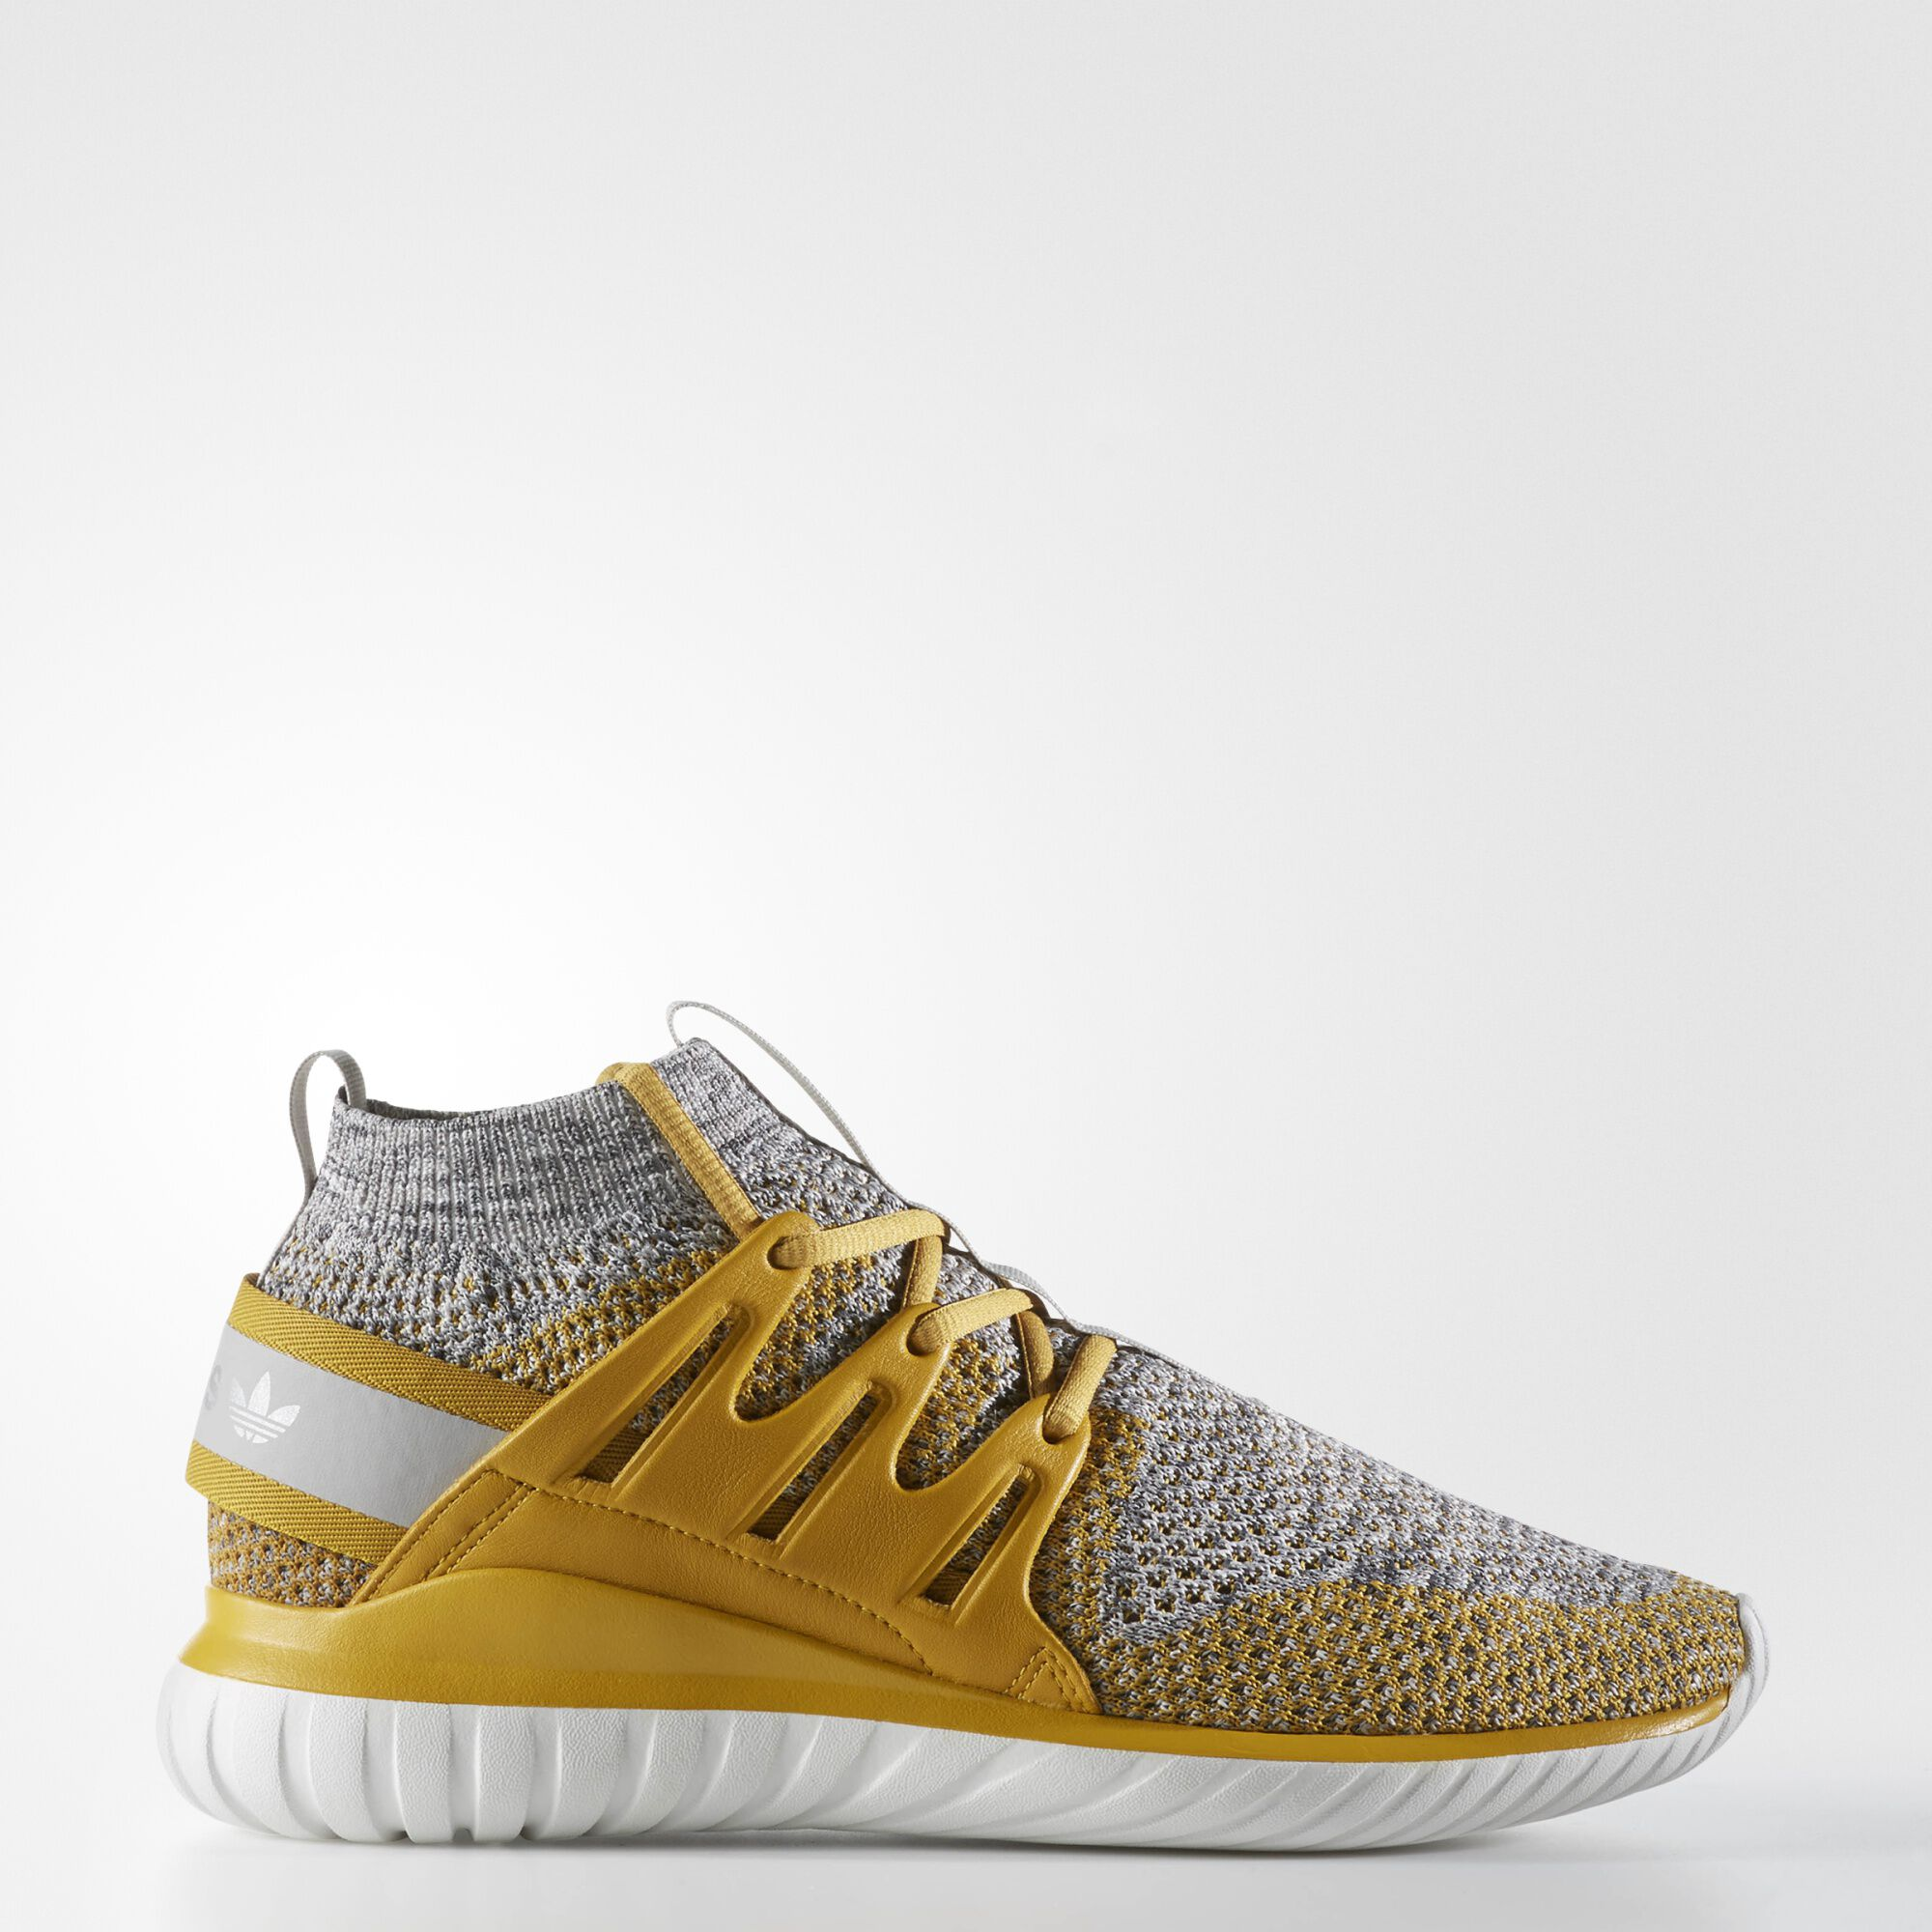 Adidas Originals Tubular Nova Heathered Primeknit January